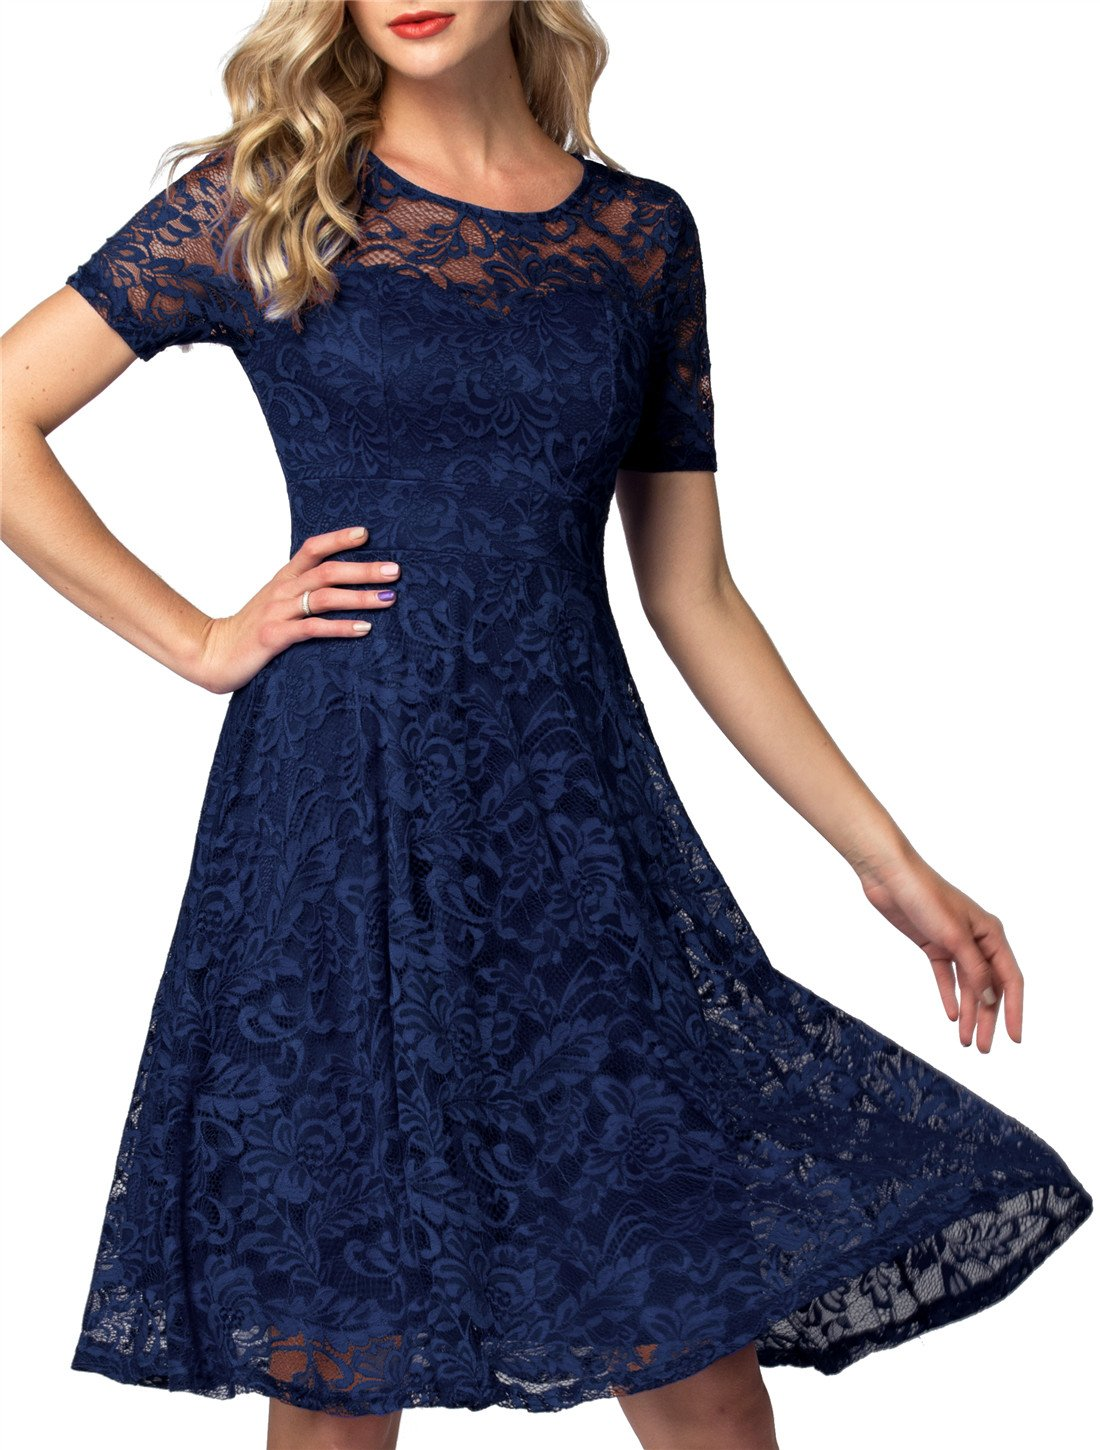 AONOUR AR8006 Women's Vintage Floral Lace Elegant Cocktail Formal Swing Dress with Short Sleeve Navy M by AONOUR